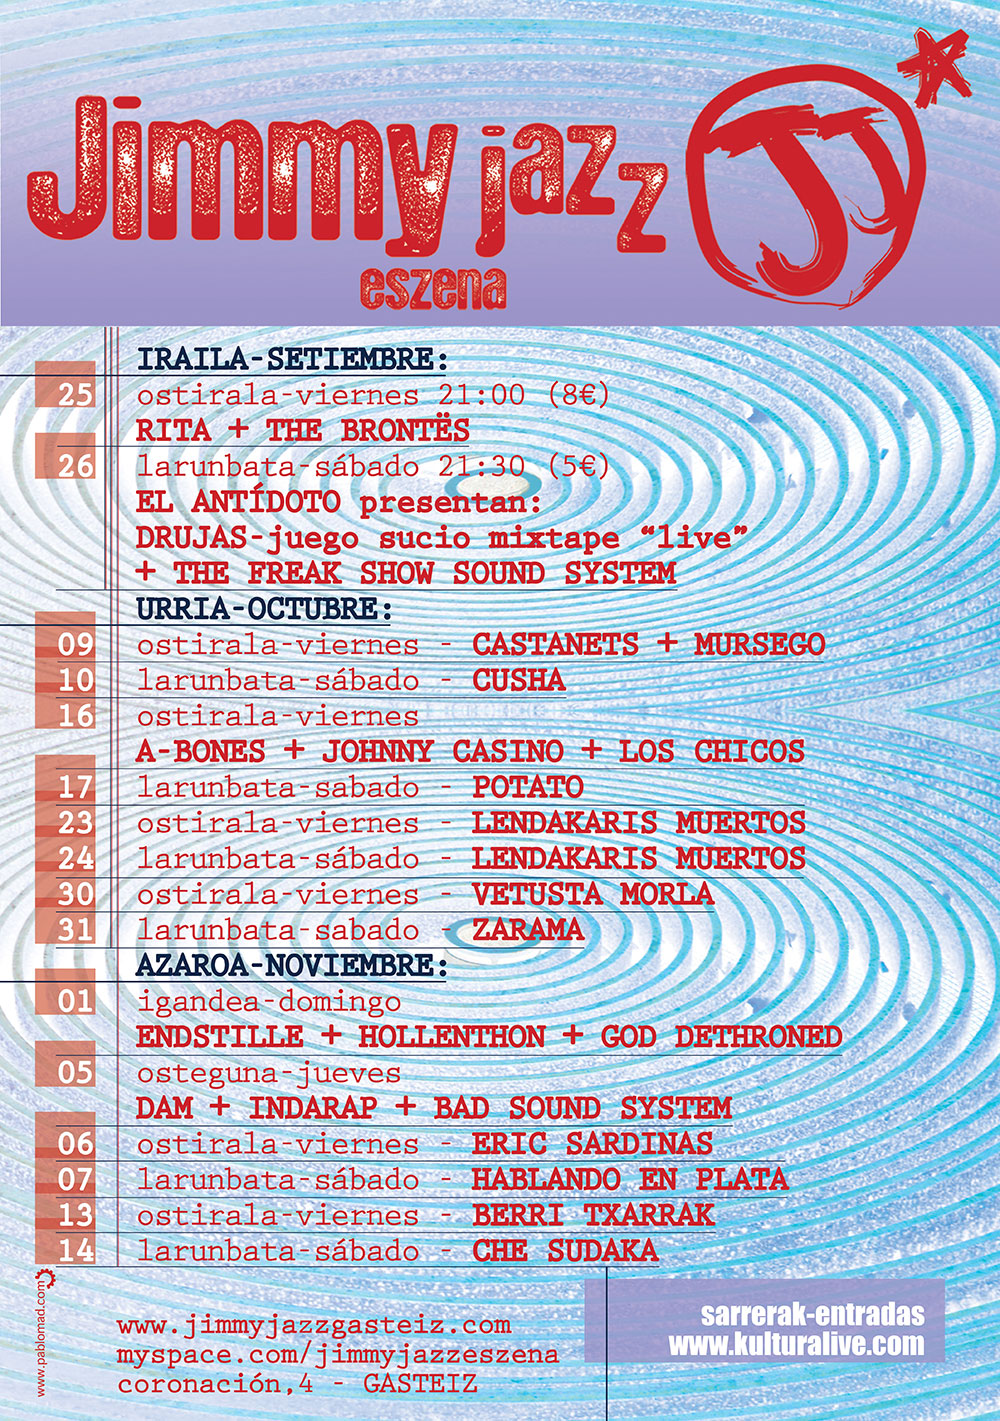 13_cartel_setiembre_09 jimmy jazz pablomad